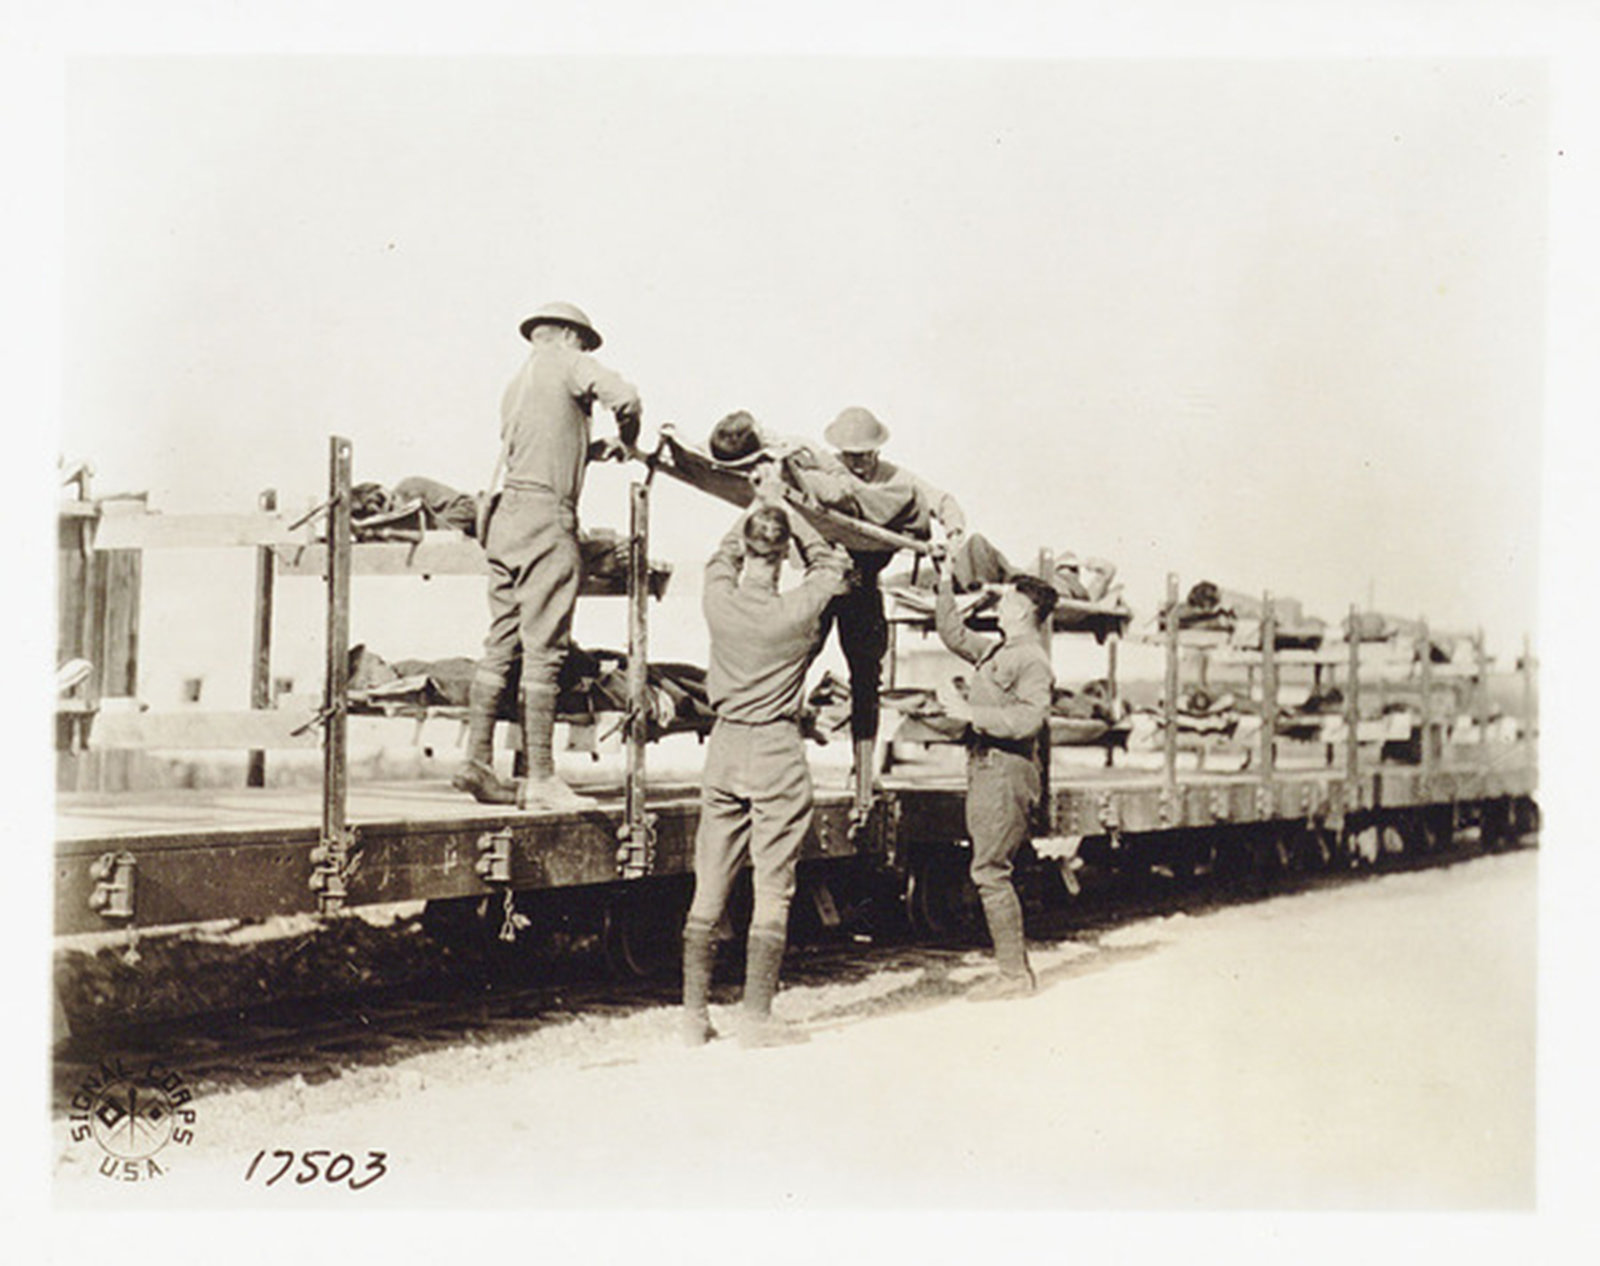 A train used for transportation of the wounded, 1918 Italy, Biblioteca Universitaria Alessandrina, In Copyright